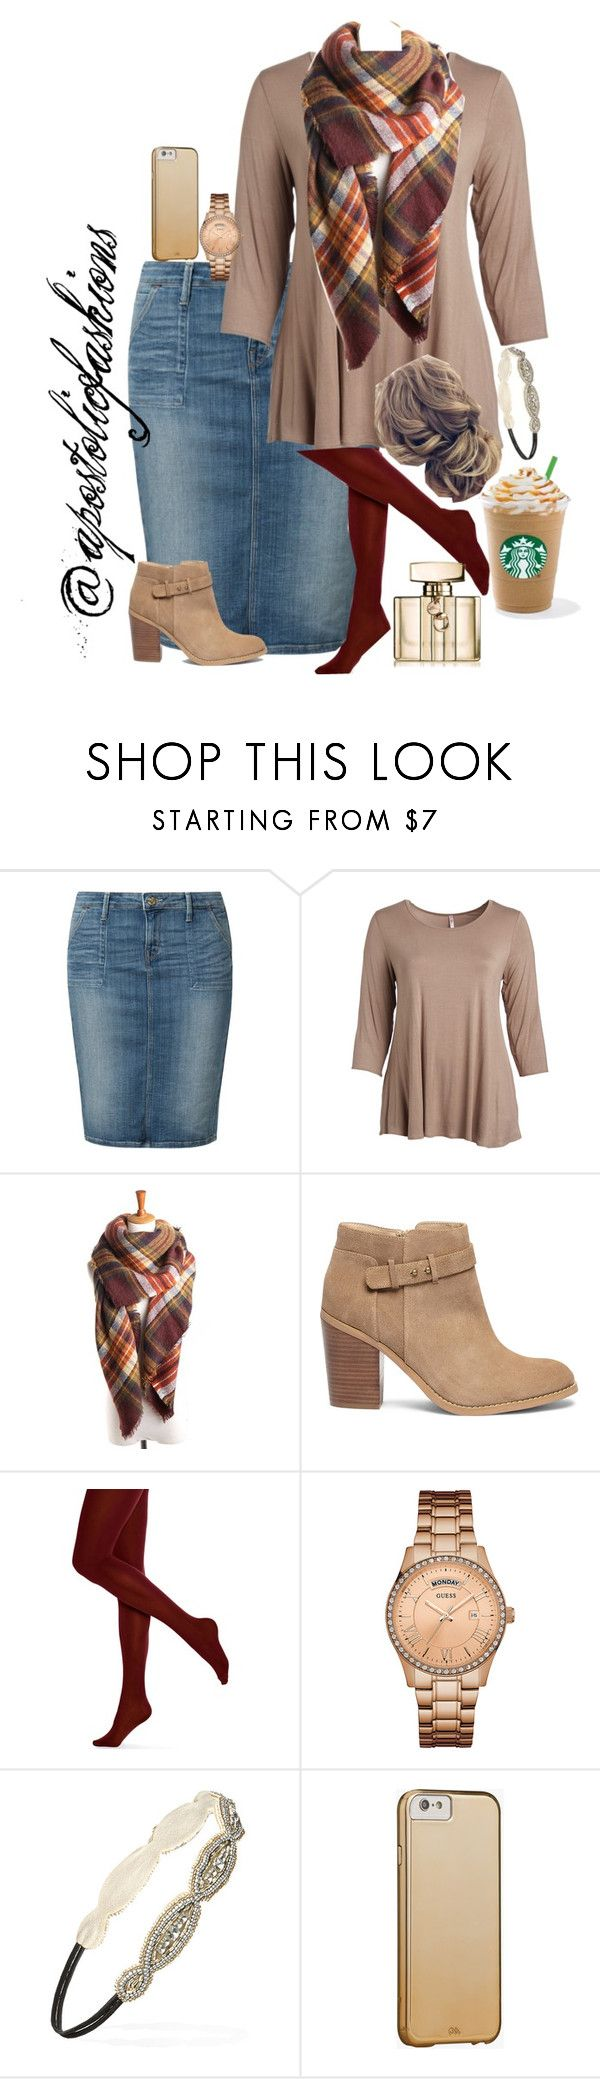 """Apostolic Fashions #1804"" by apostolicfashions ❤ liked on Polyvore featuring Lee, Cool Melon, Sole Society, HUE, GUESS, Forever 21, Case-Mate, Gucci and plus size clothing"